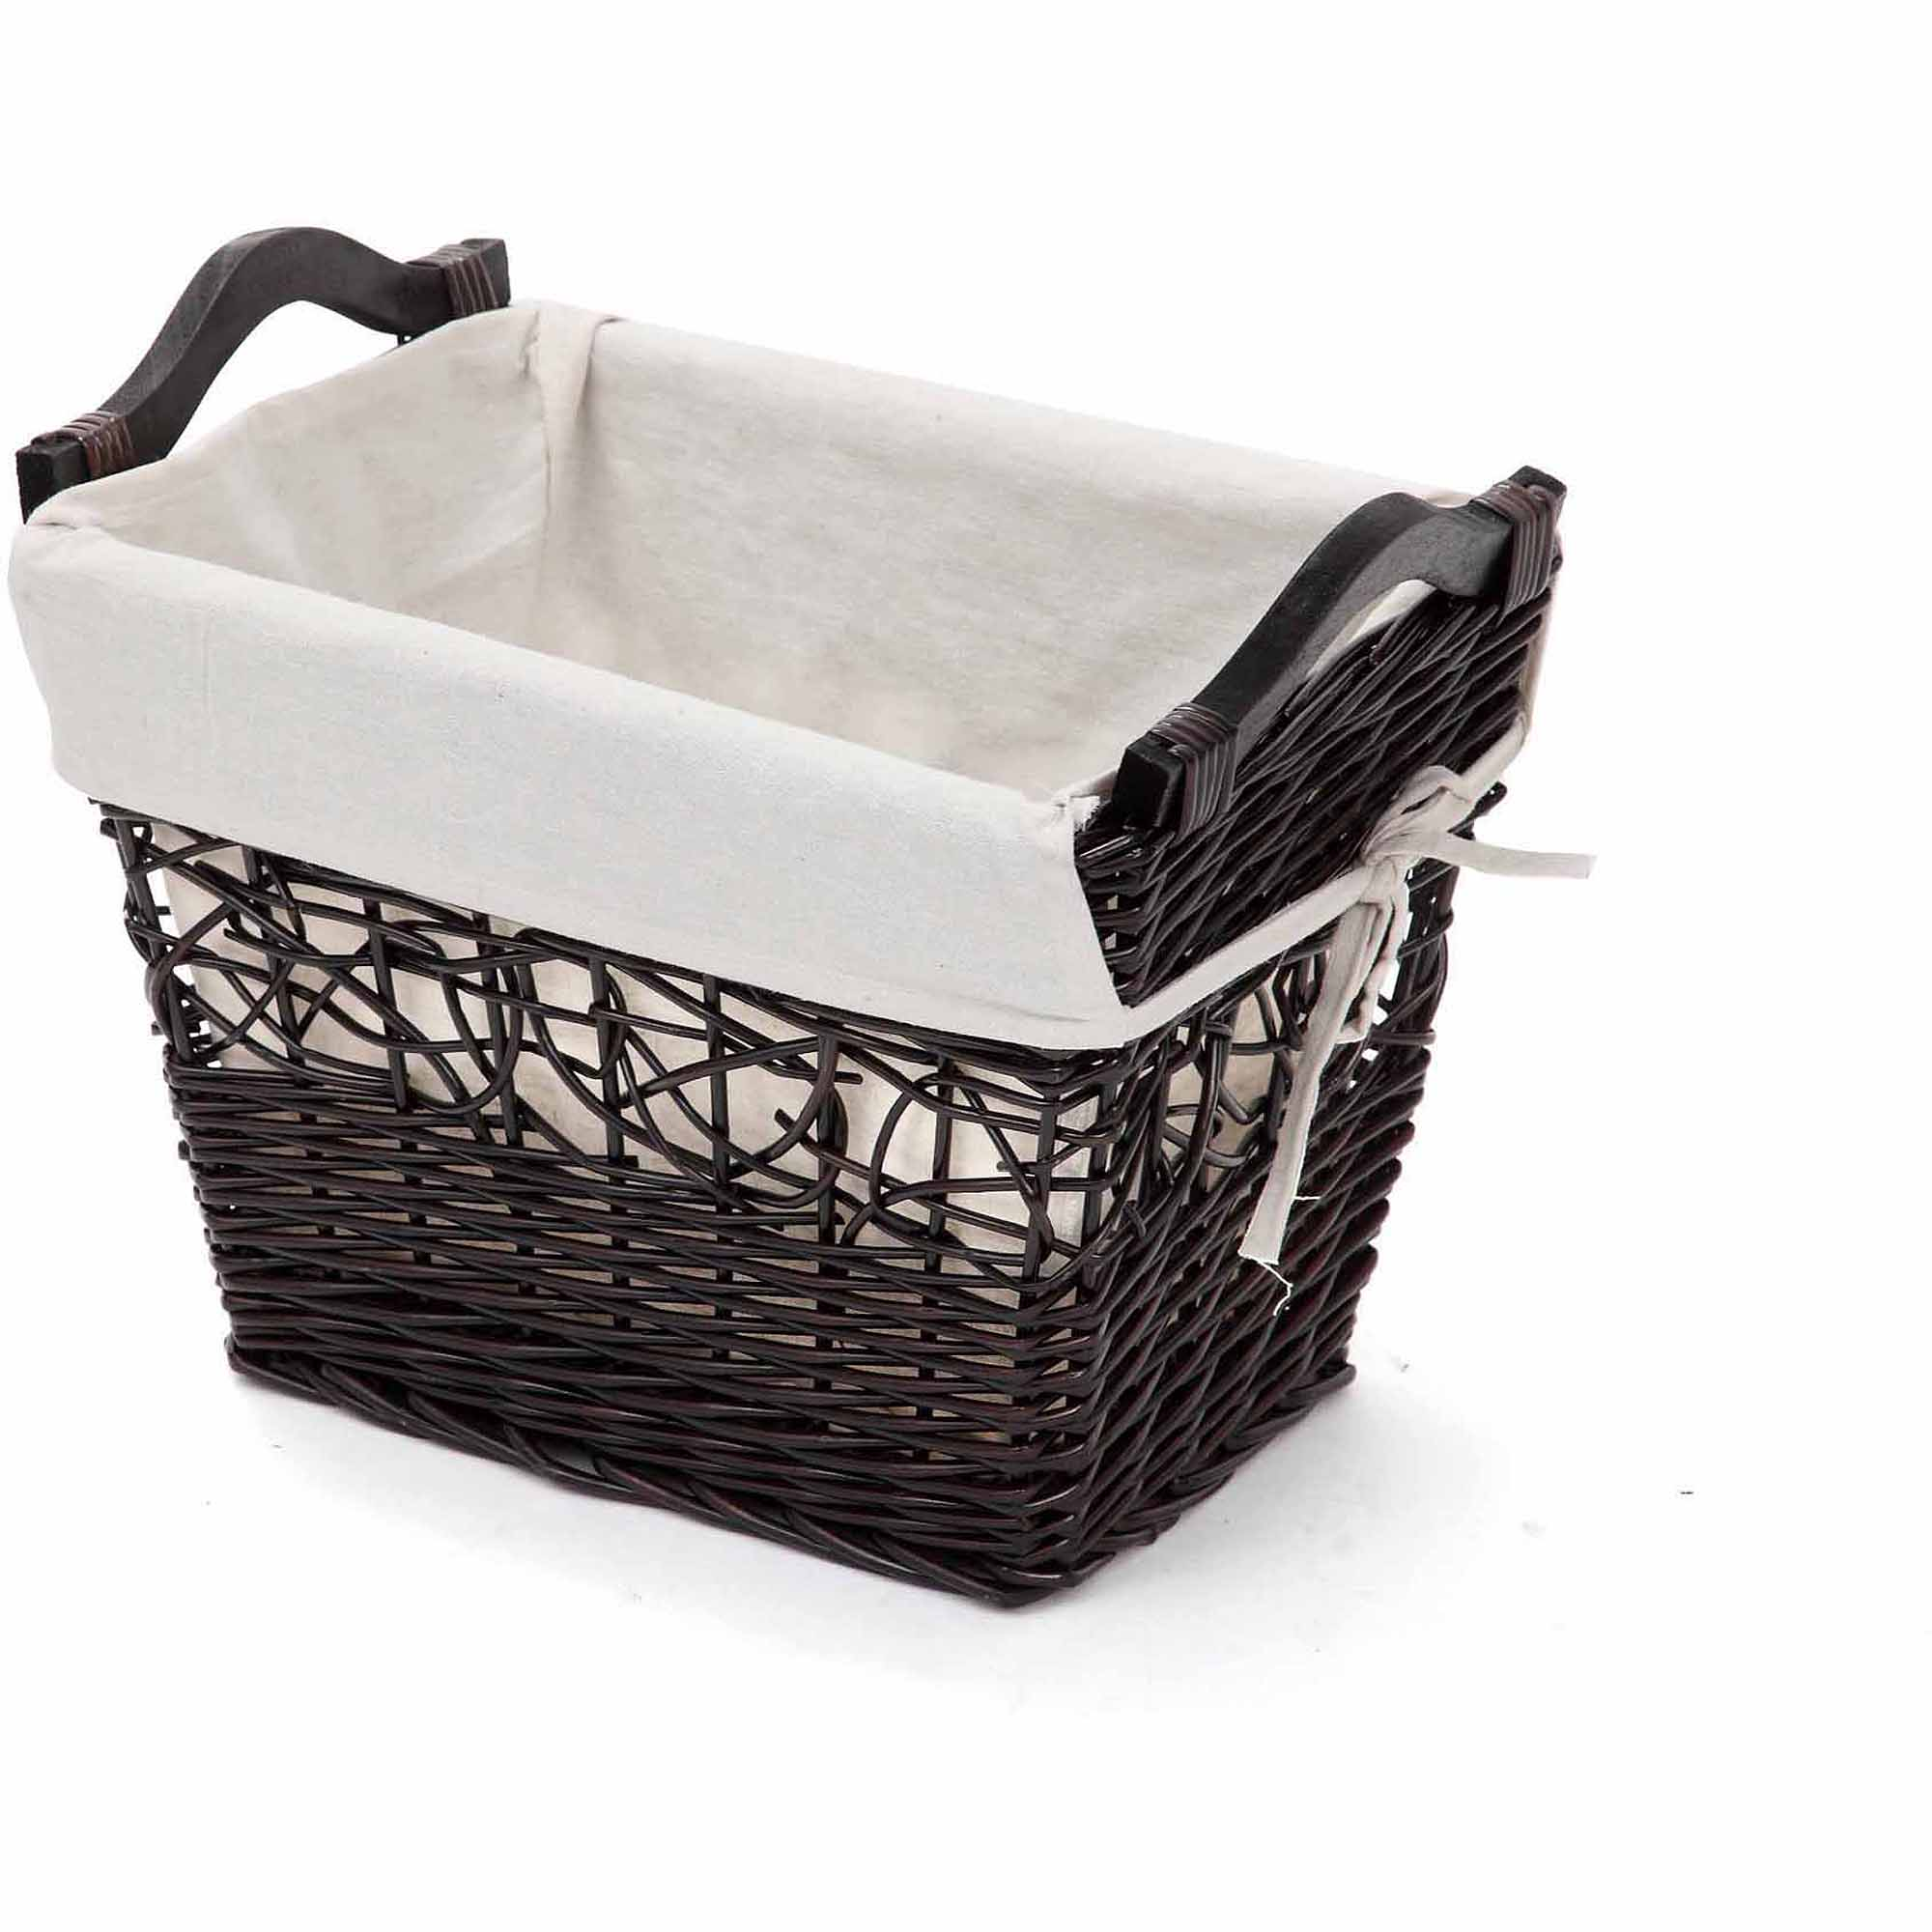 Better Homes and Gardens Large Willow Tapered Basket, Dark